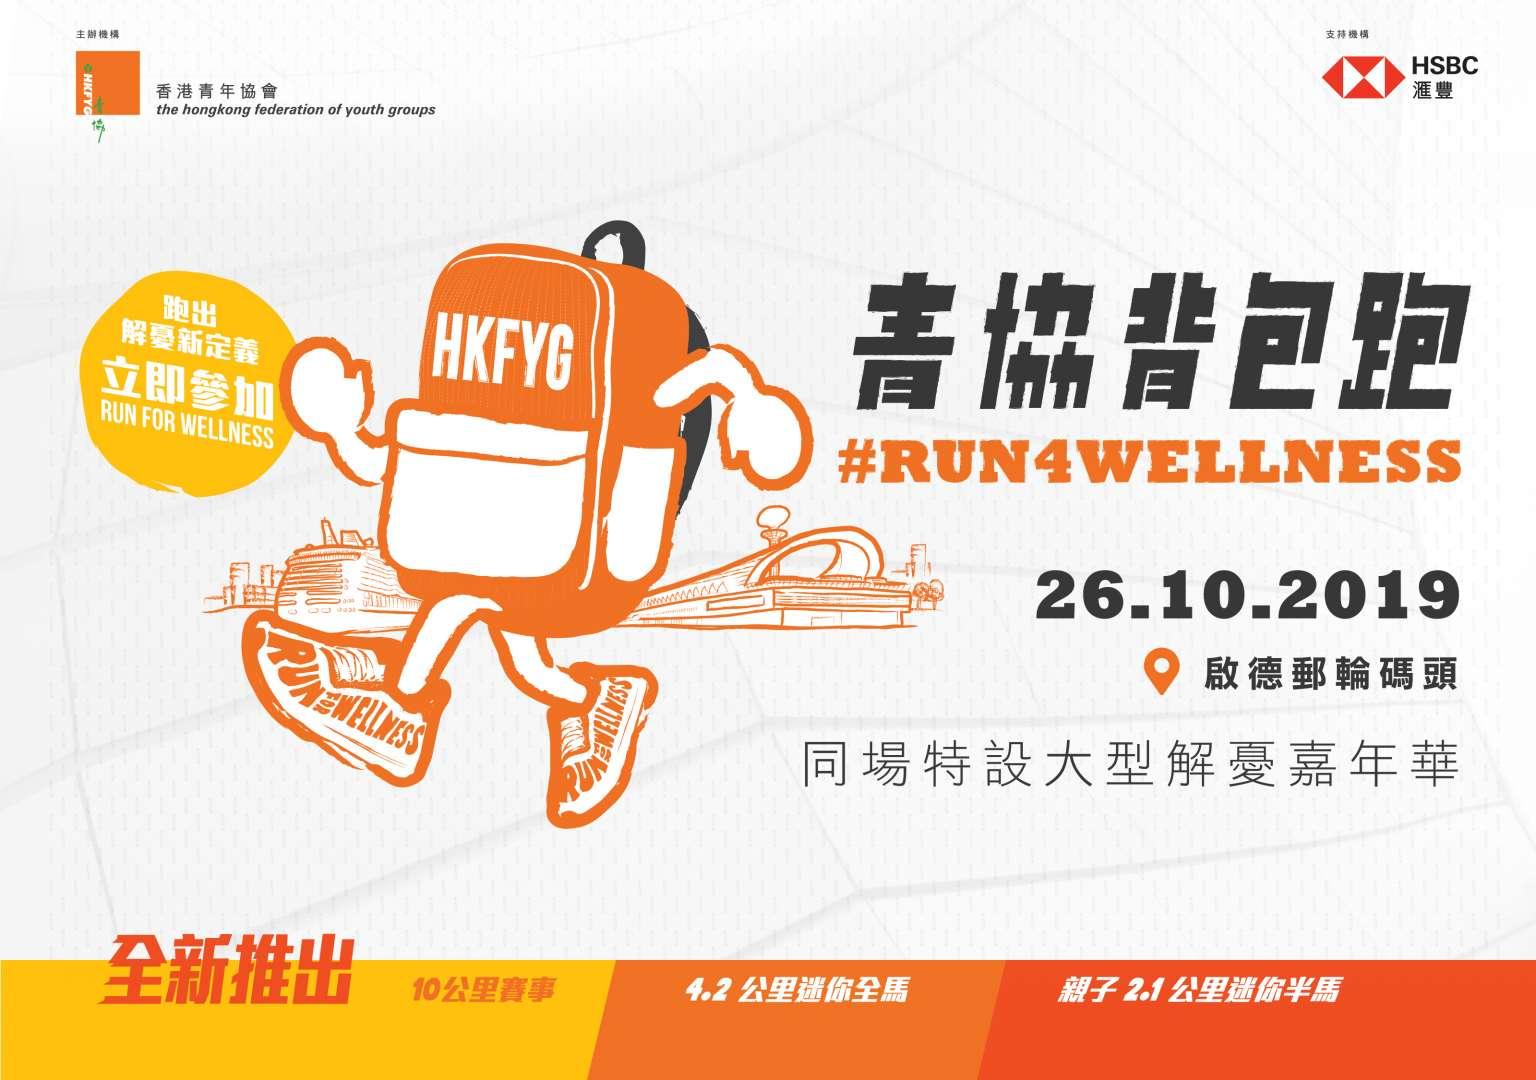 青協背包跑 Run for wellness 2019